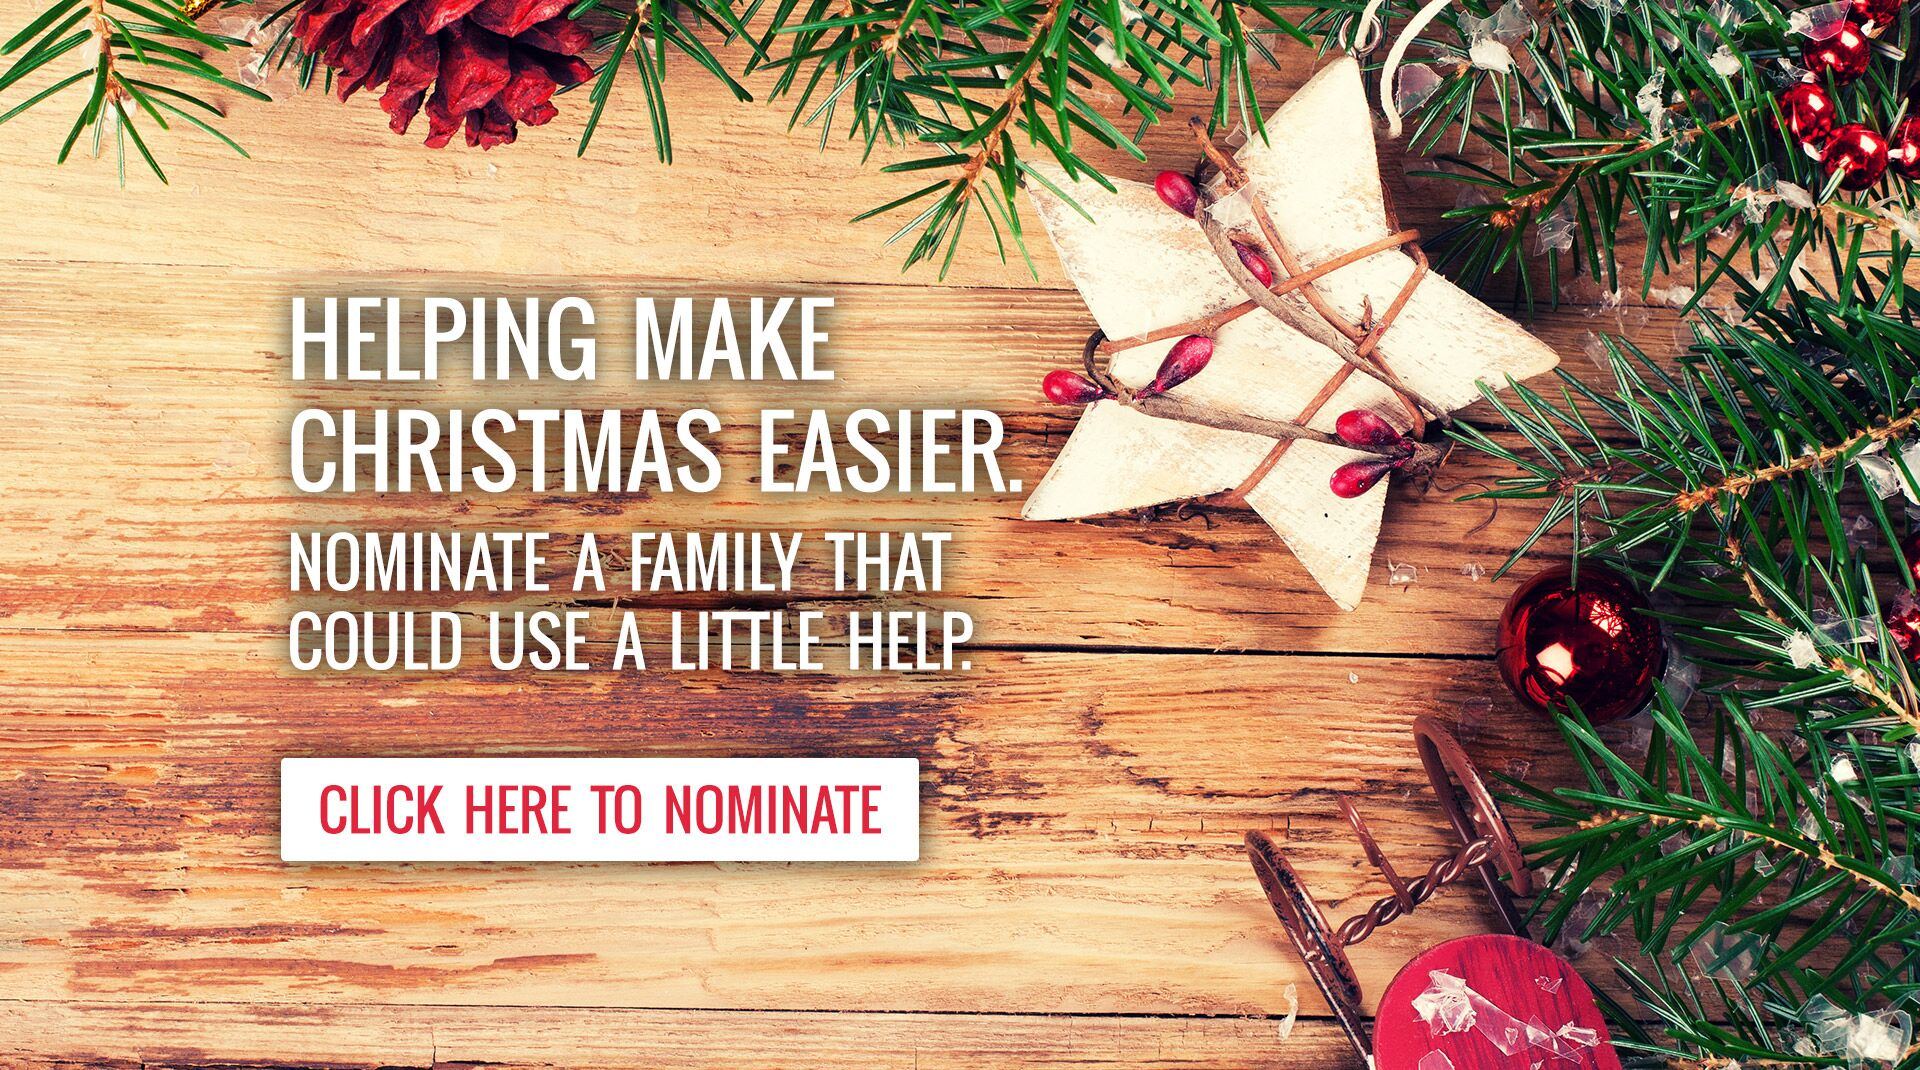 Nominate A Family